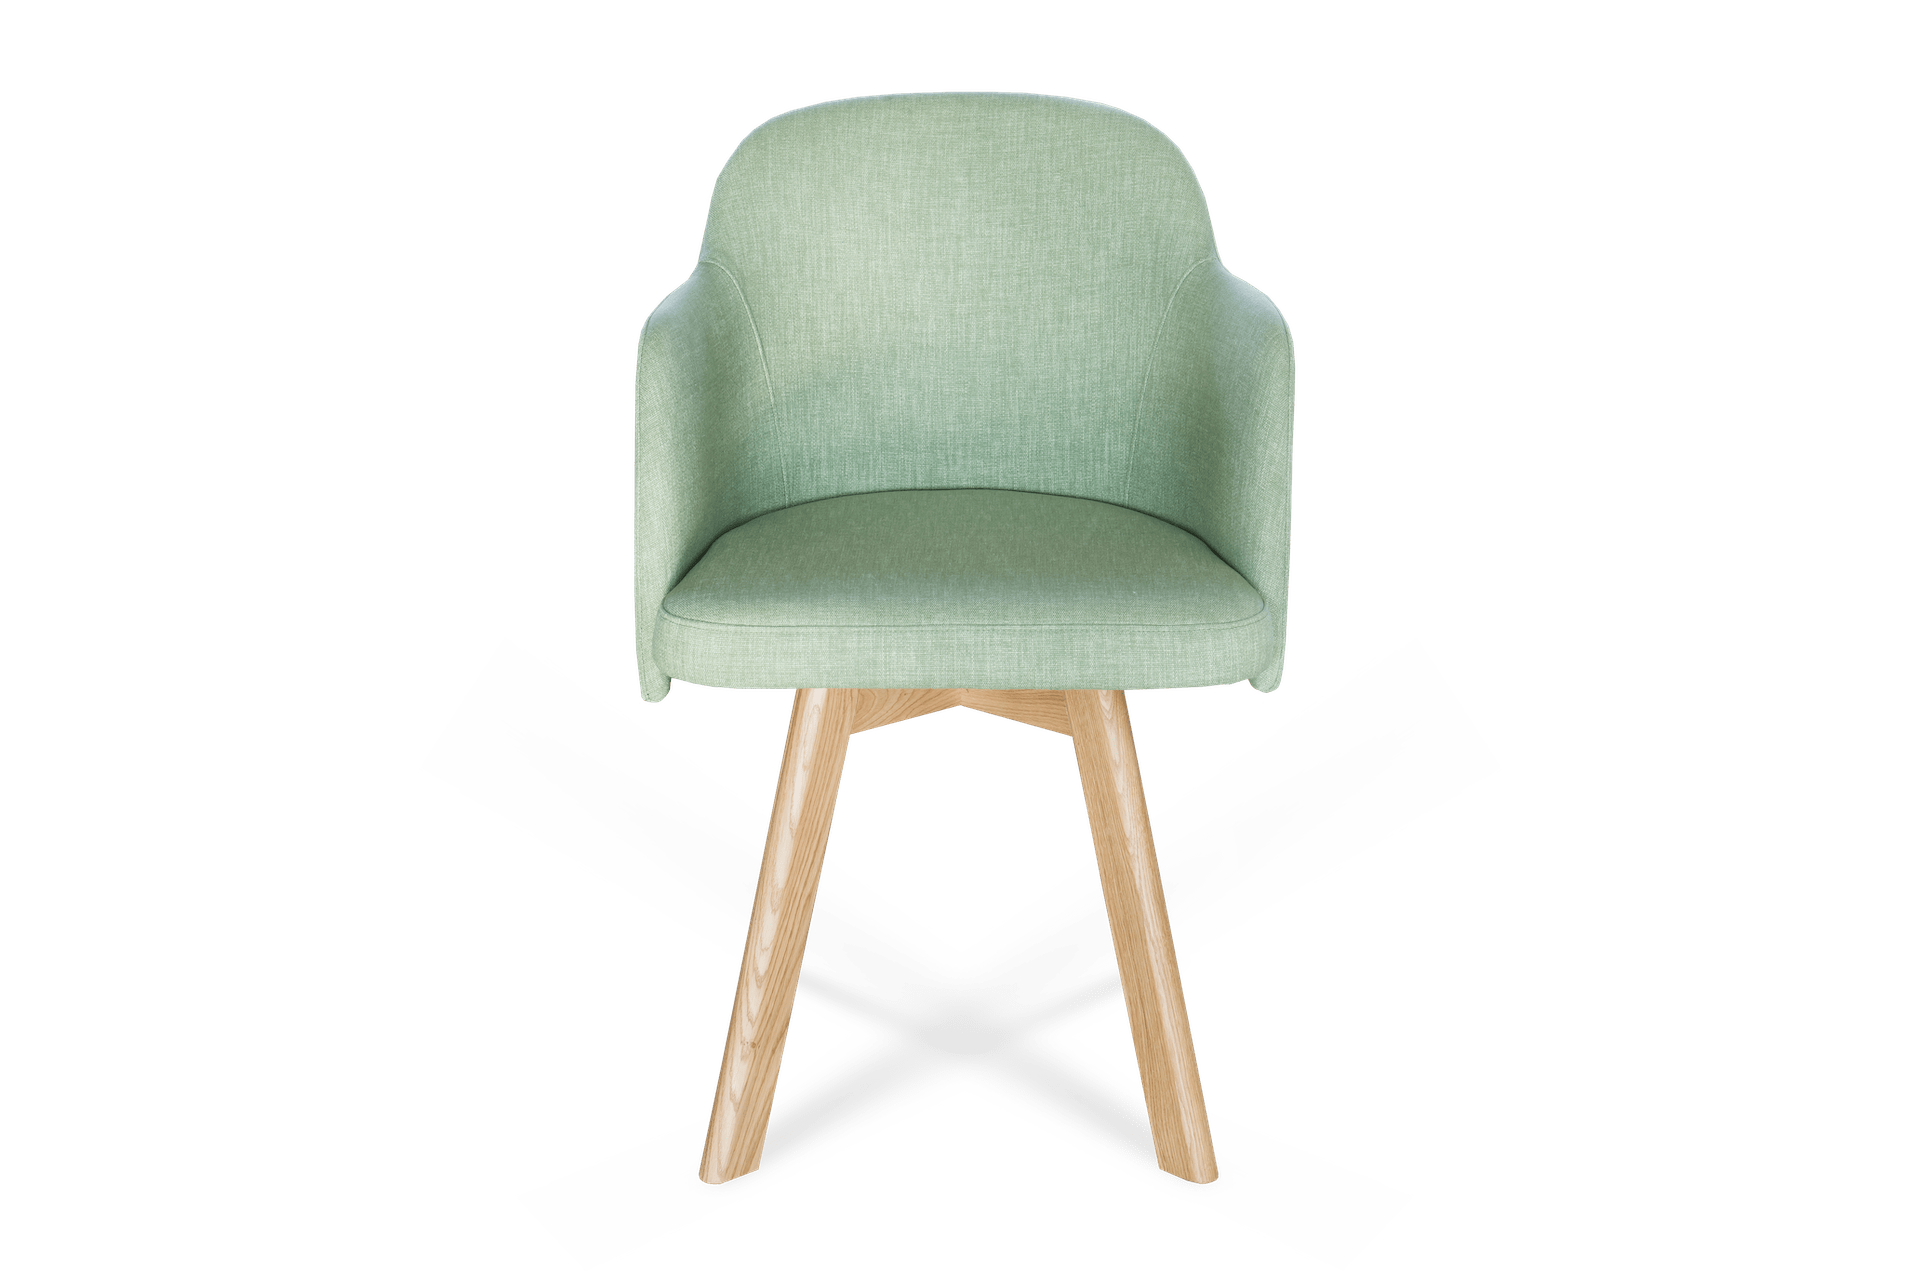 043 - action chair (1)